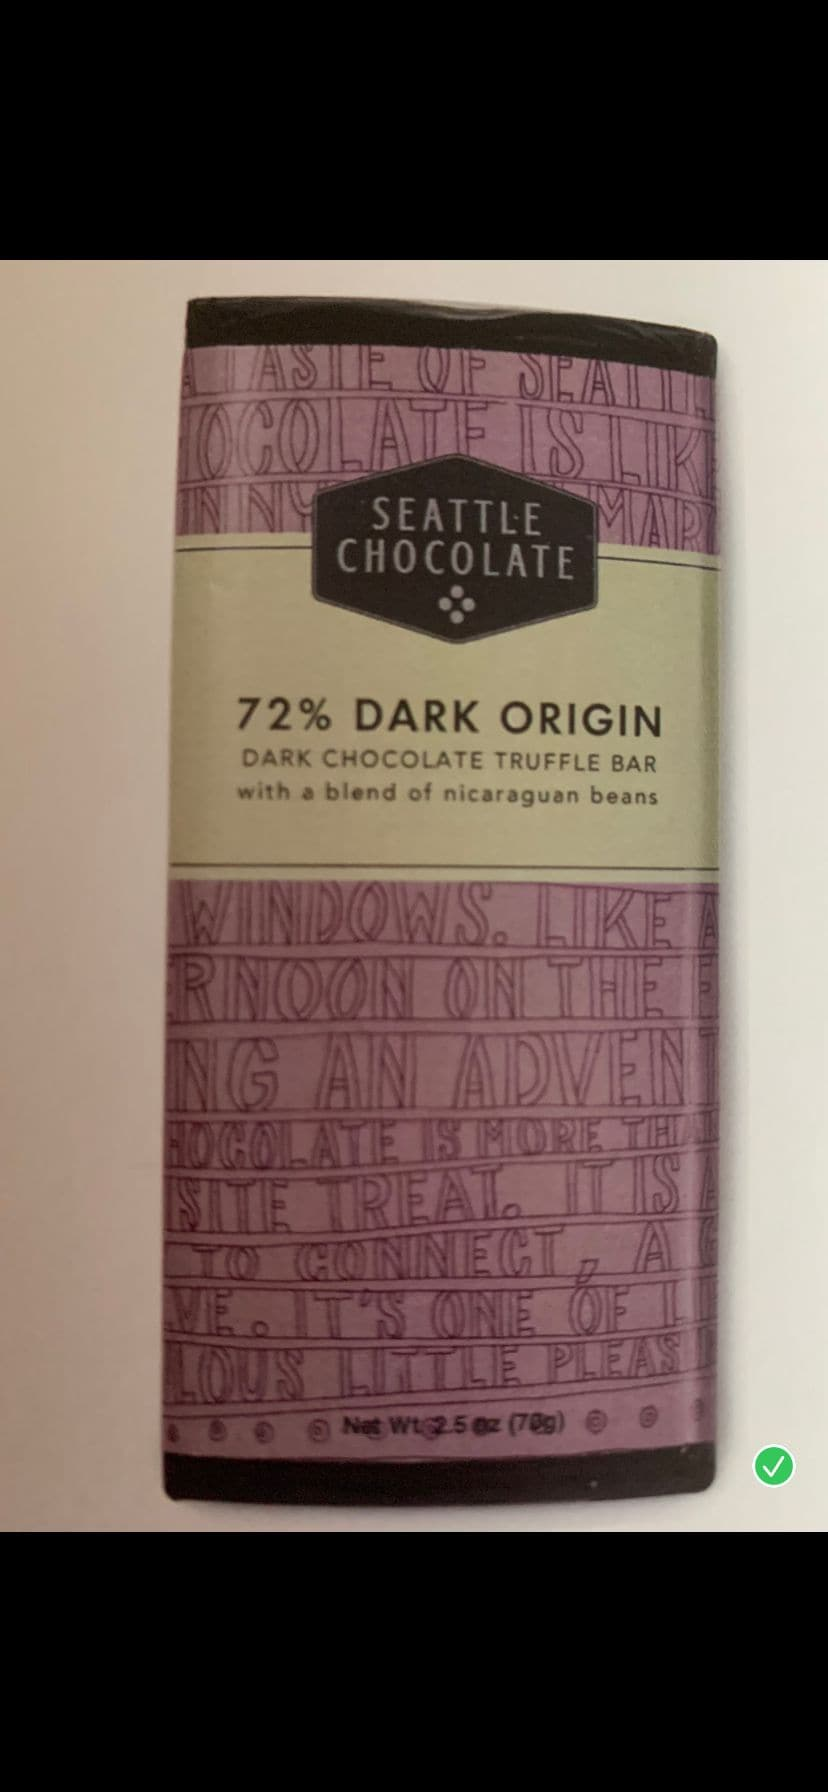 Seattle Chocolate Truffle Bars